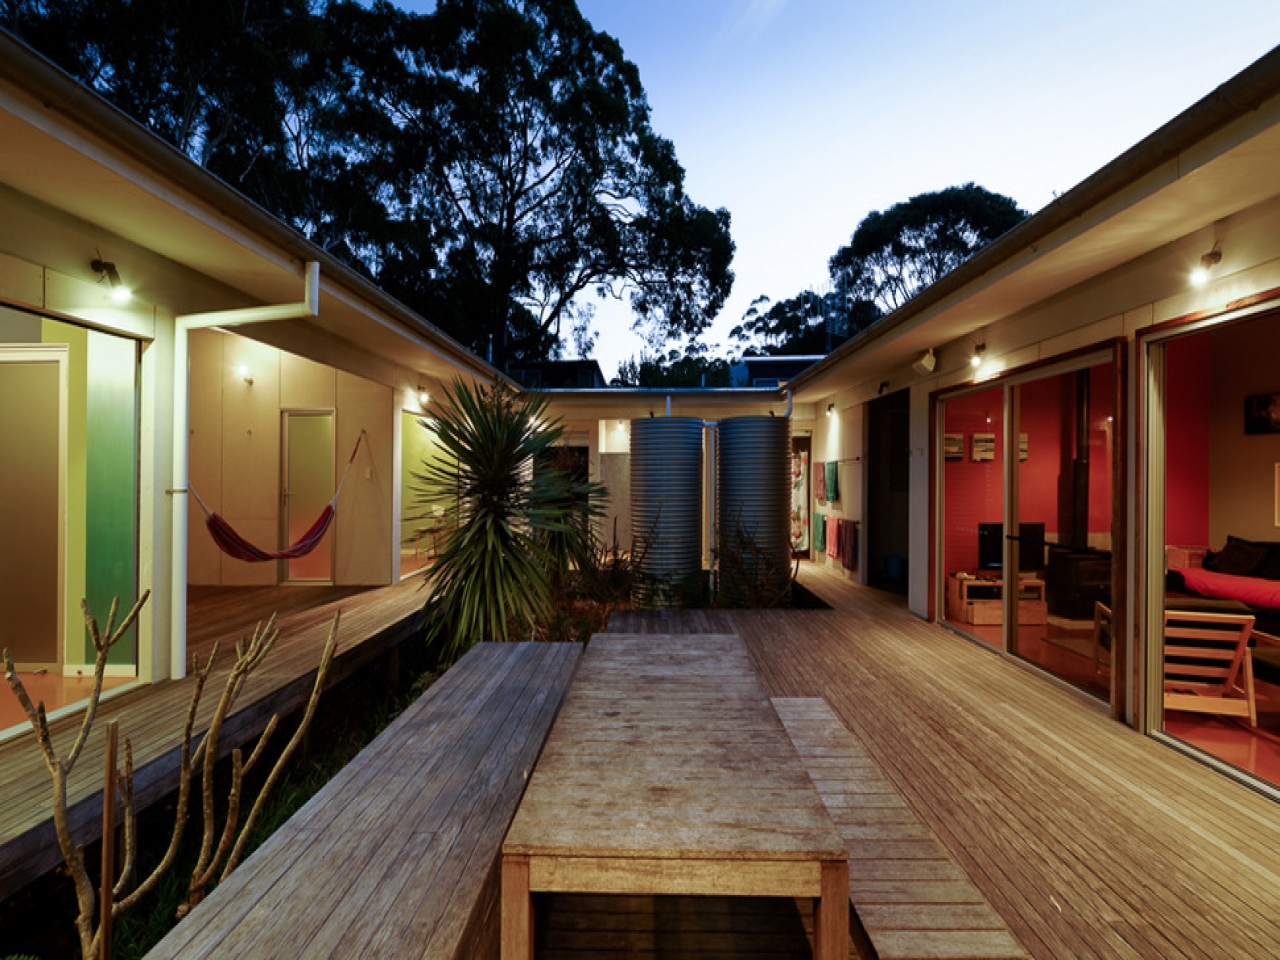 Ranch Homes With Courtyards Small Houses With Courtyards